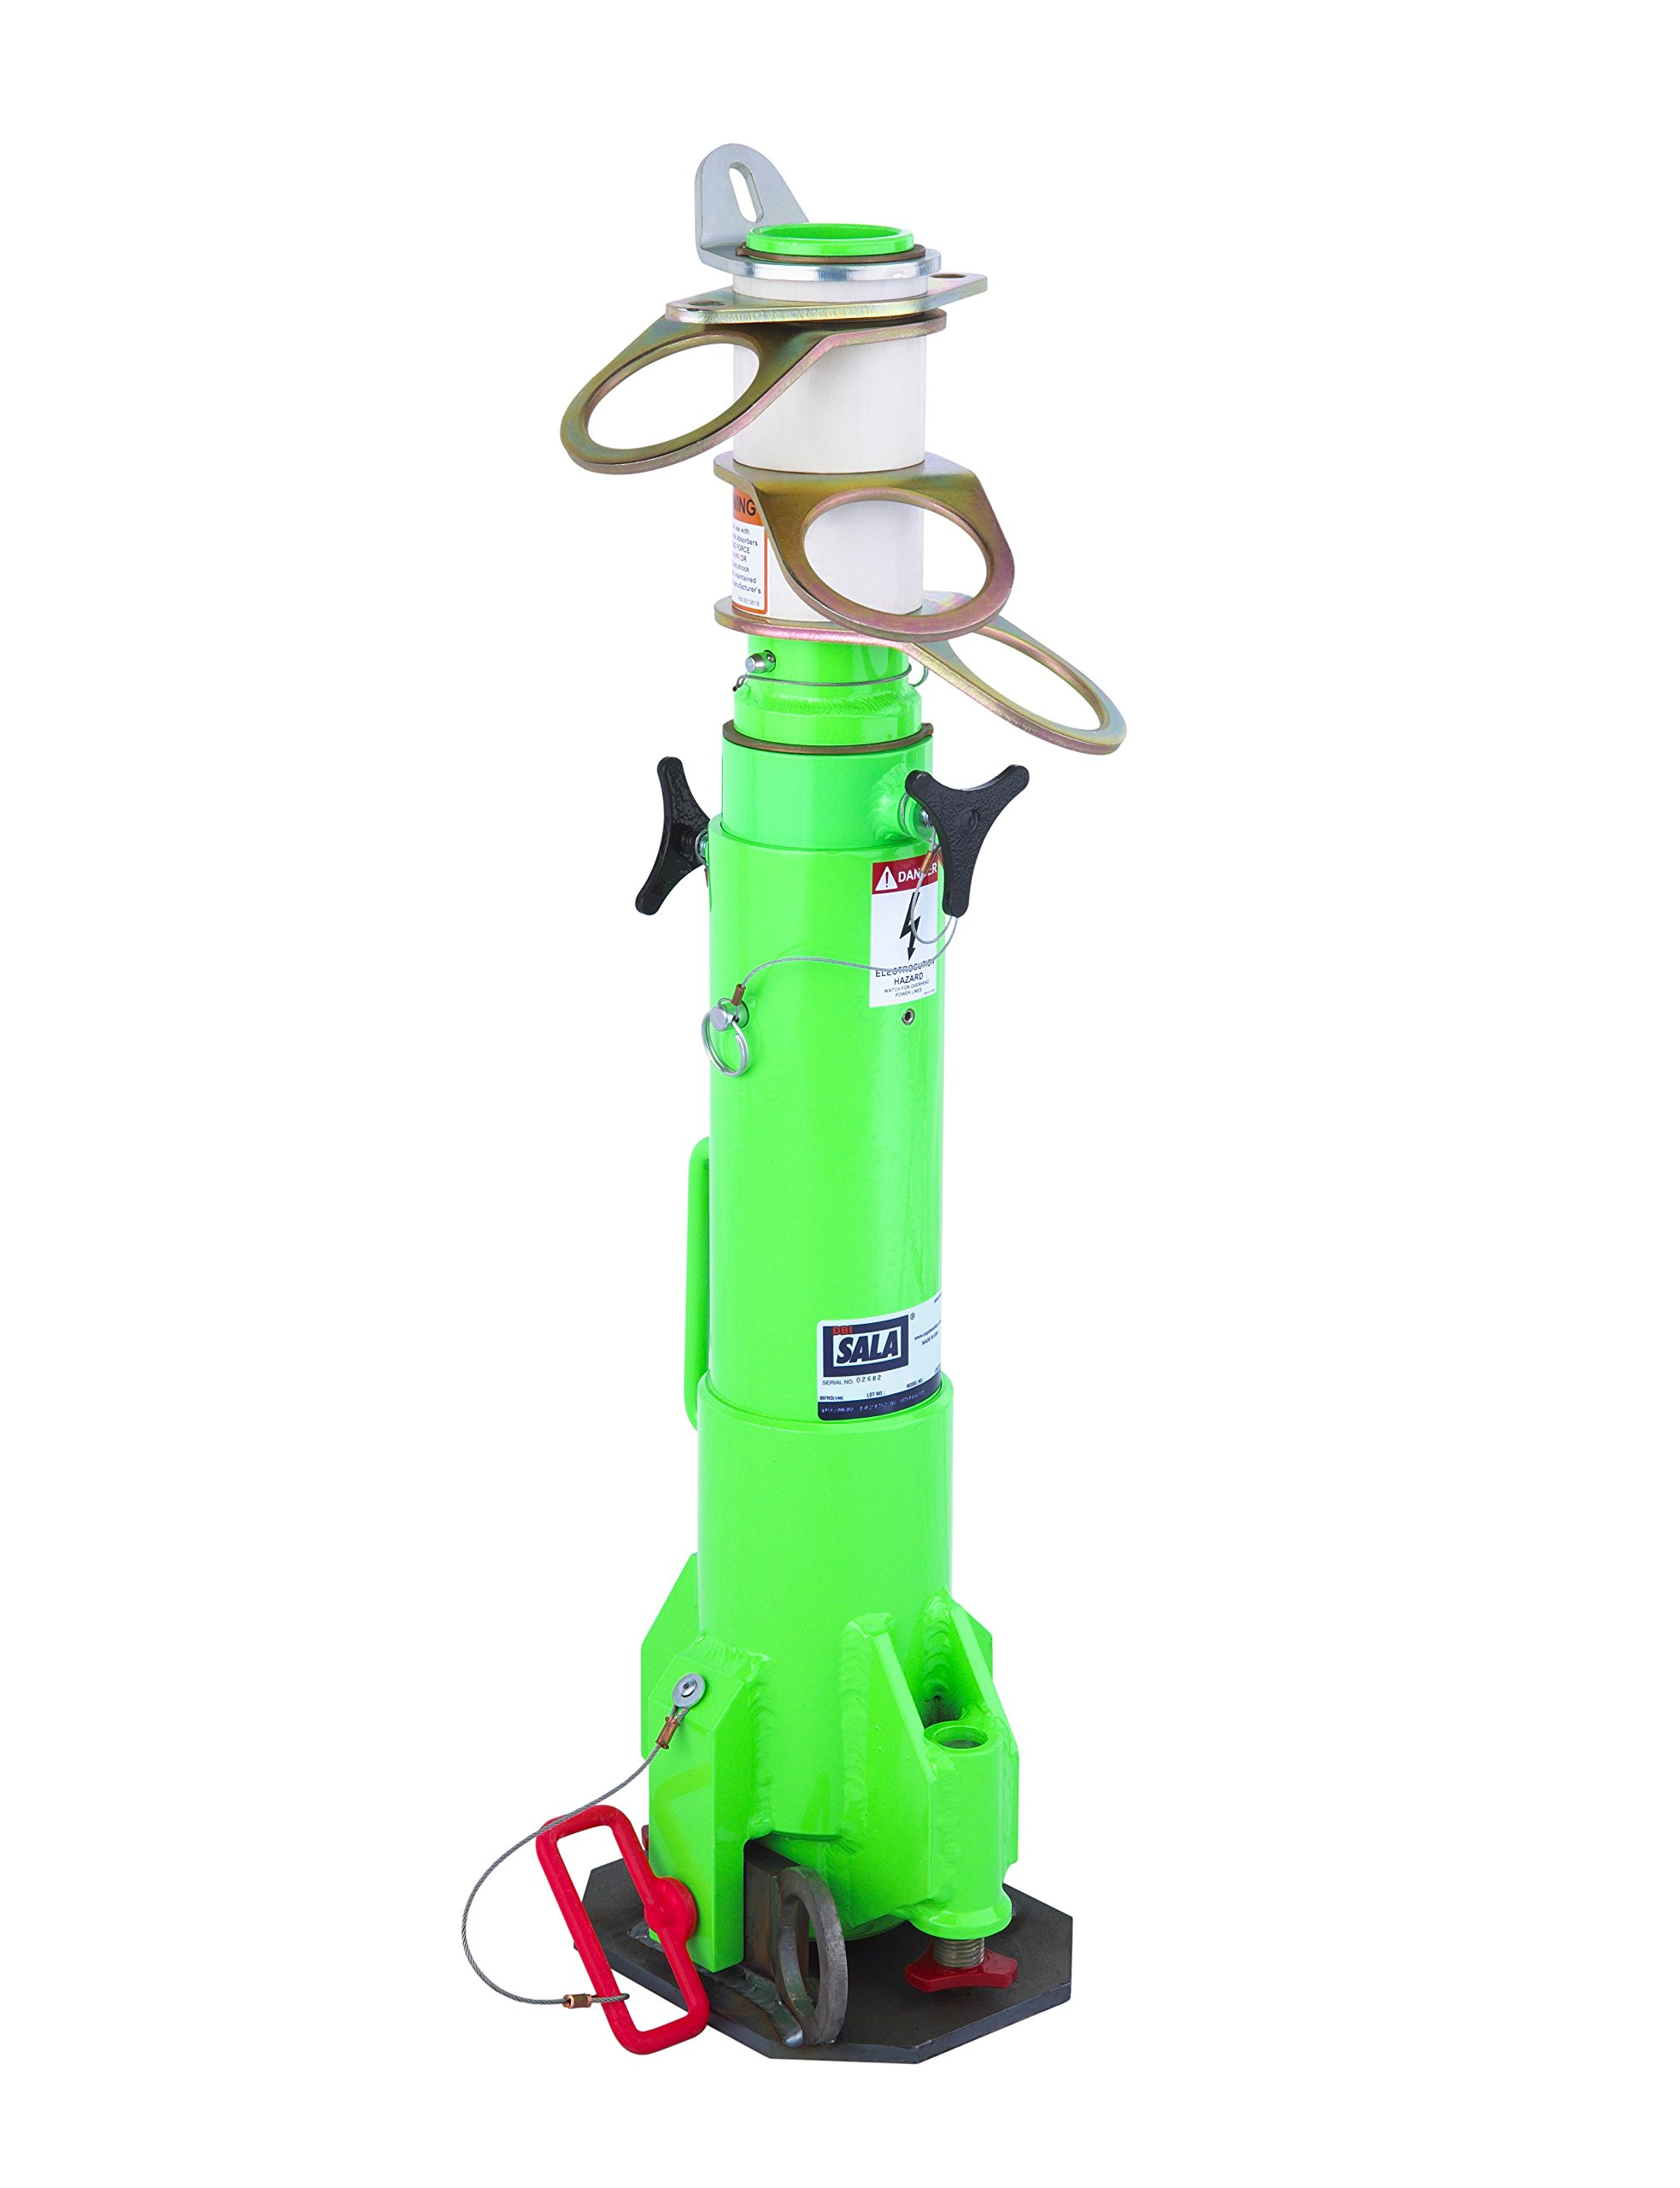 3M DBI-SALA Advanced 8516691 Confined Space System, Portable, Telescoping Fall Arrest Post with 3 Independent 360 Degree Swiveling Anchor Points, Green